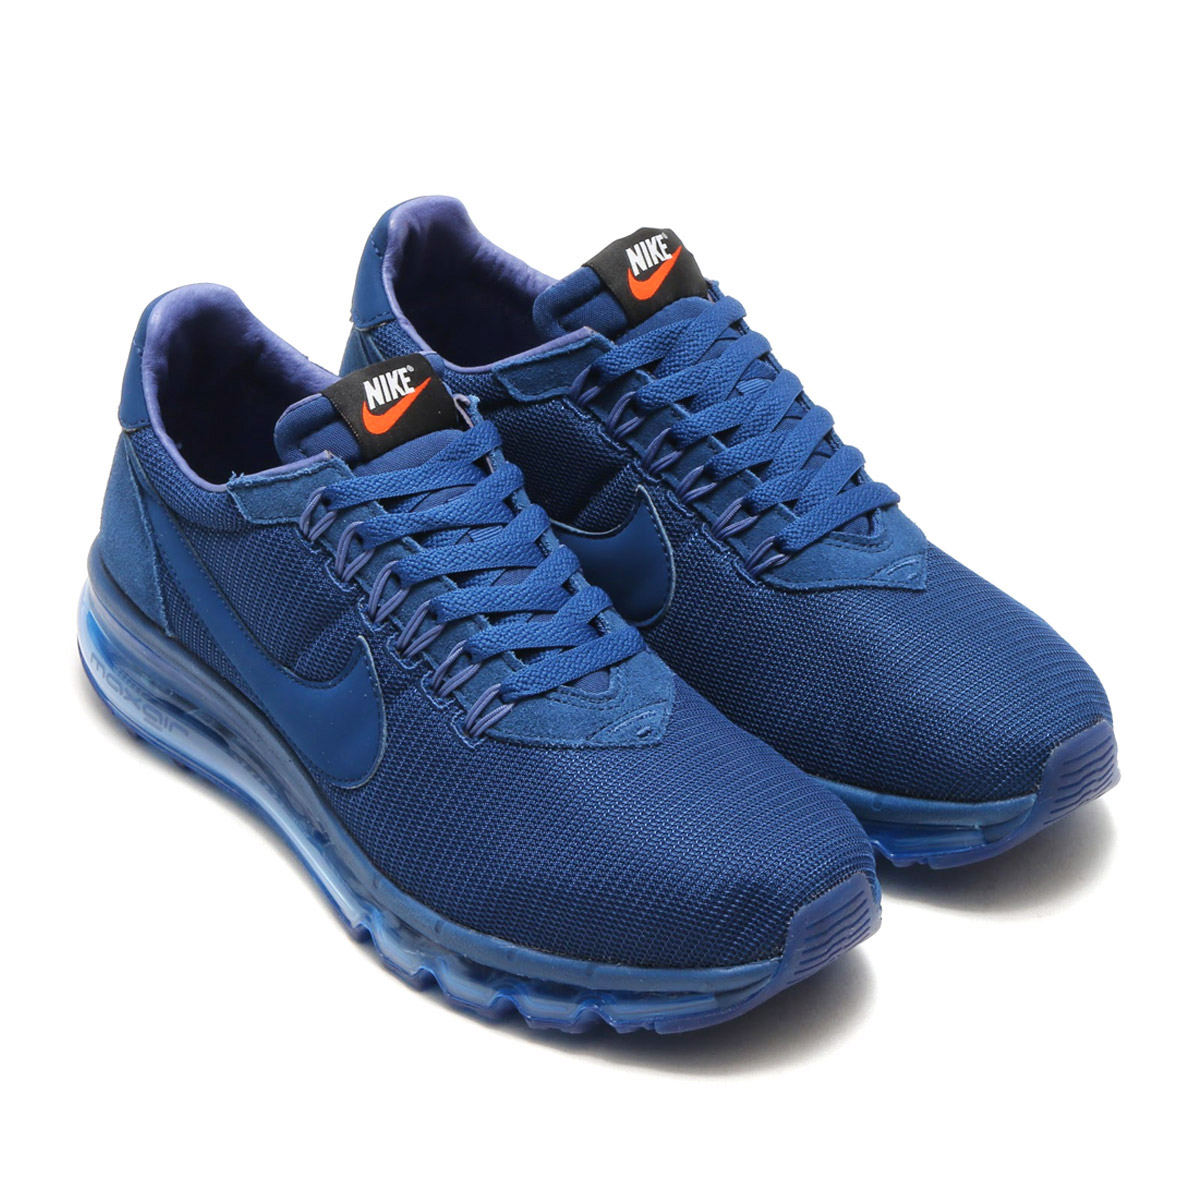 NIKE AIR MAX LD-ZERO(ナイキ エア マックス LD ゼロ)(COASTAL BLUE/COASTAL BLUE-BLUE MOON)17SP-S